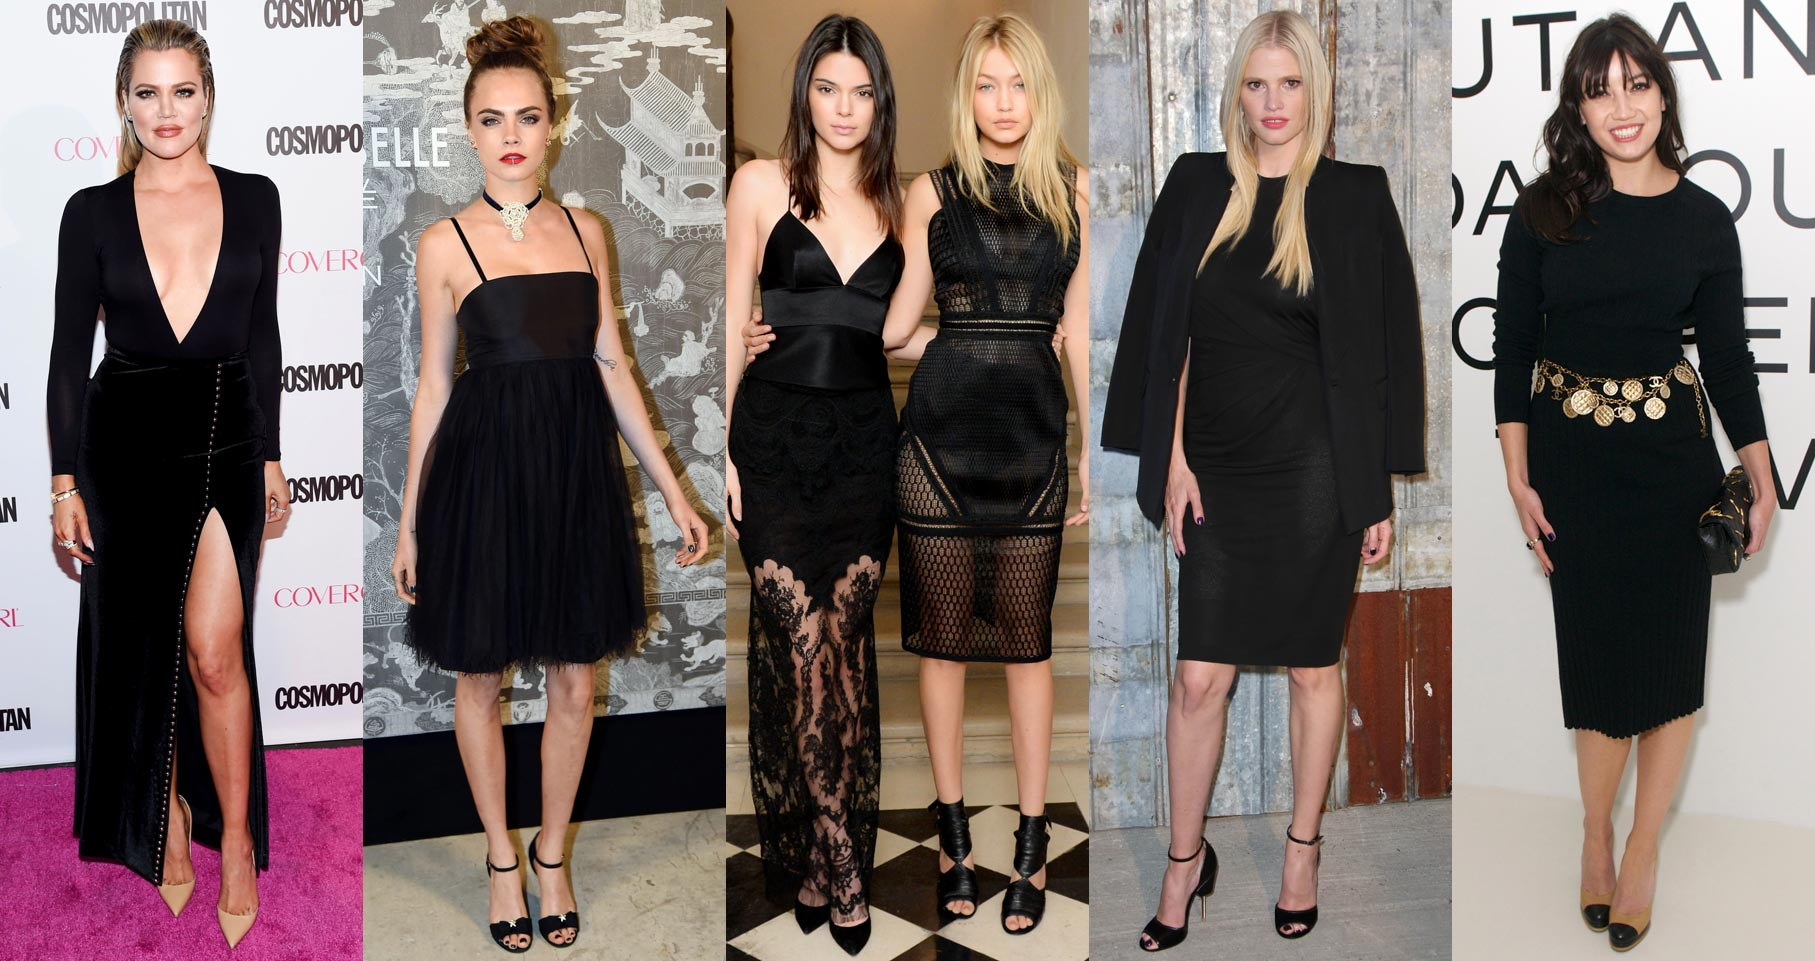 little-black-dress-party-style-trend-cara-kardashian-kendall